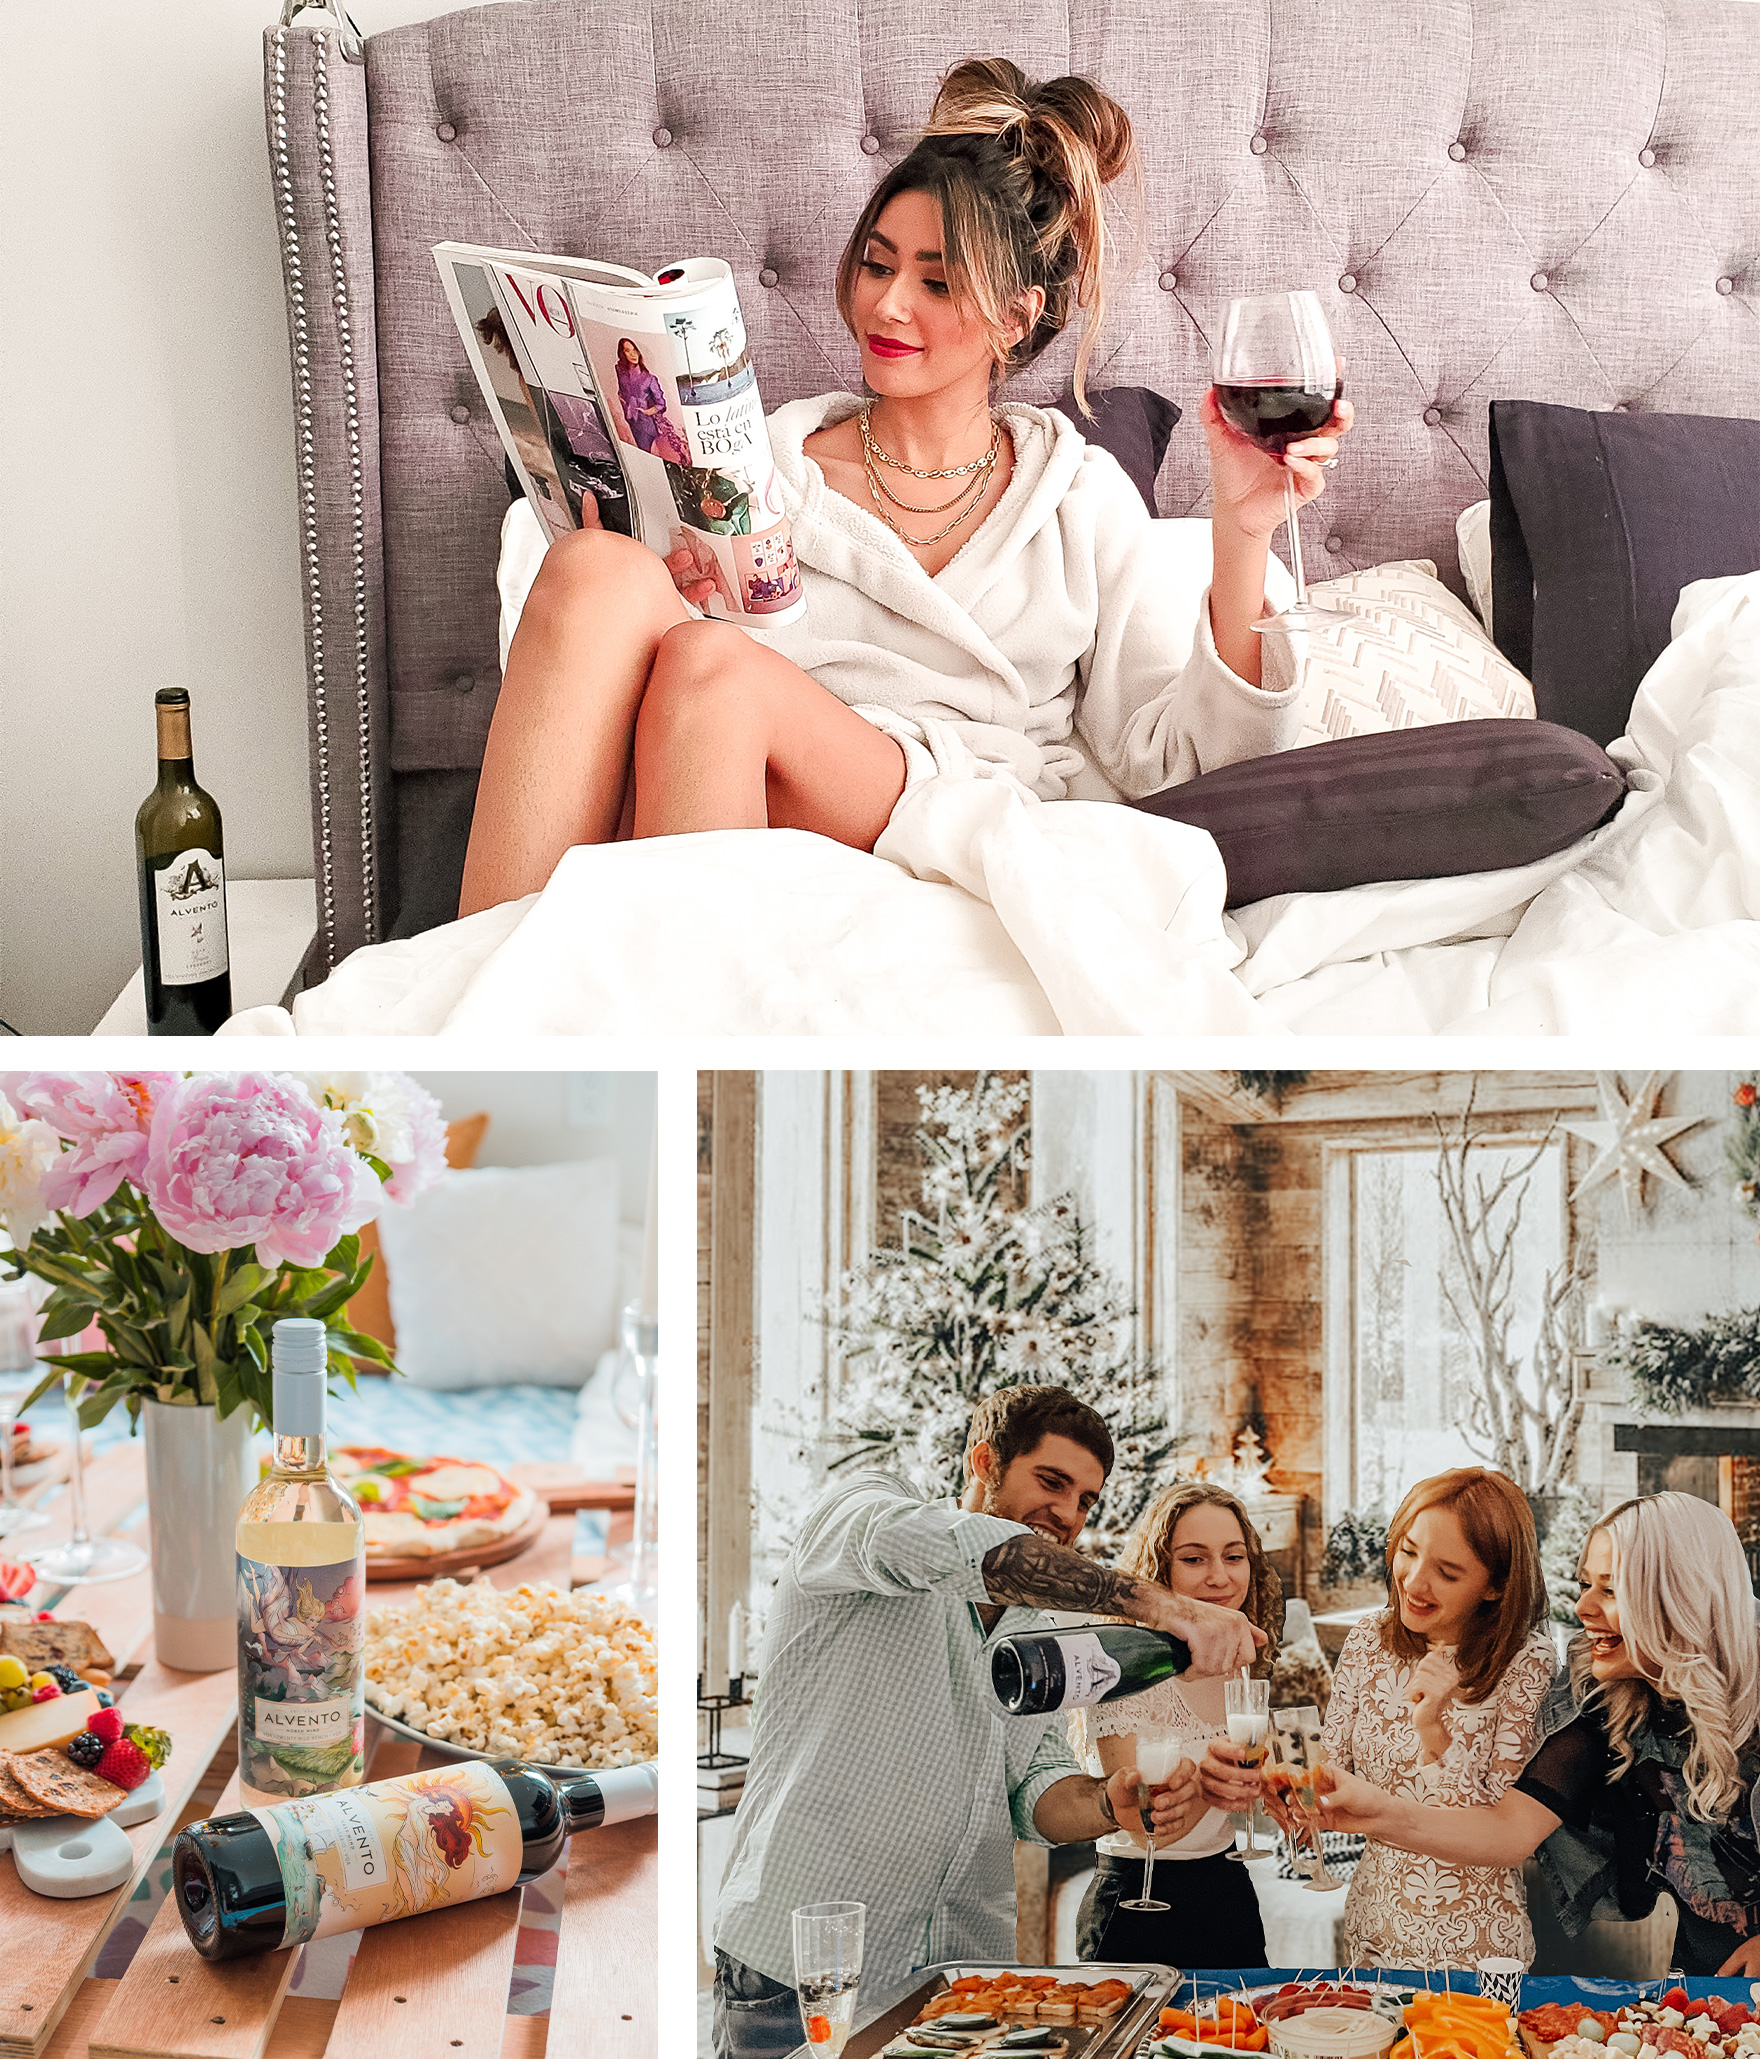 3 Image Collage (Clockwise) - Woman relaxing drinking glass of red wine, group of 4 people celebrating, Wind Series with snacks